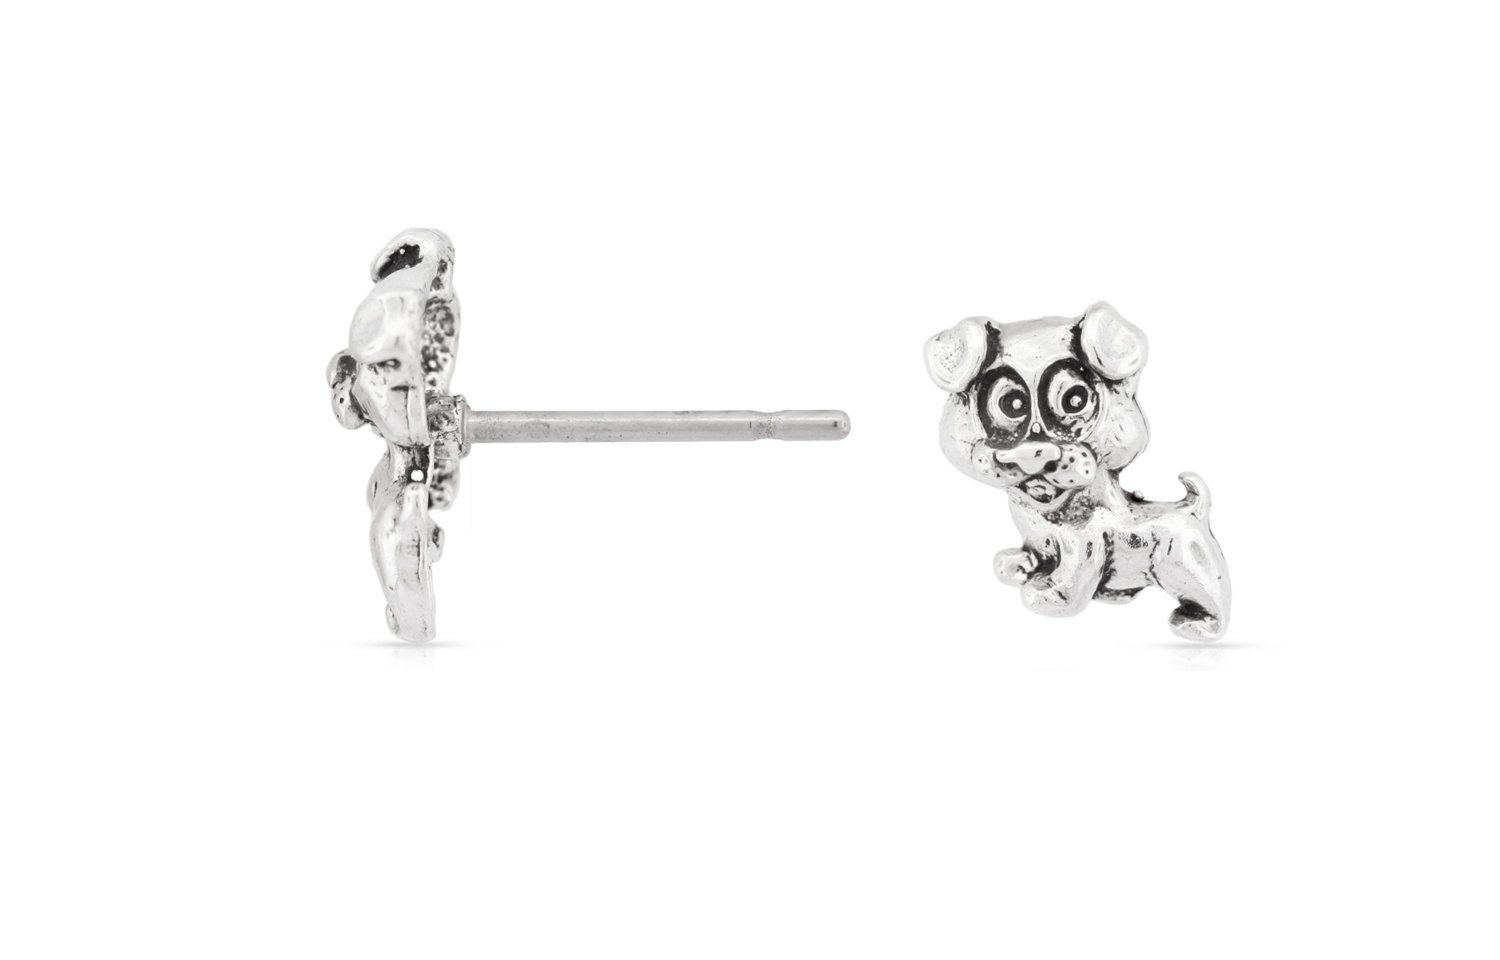 Primary image for Ear studs, Puppy,  925 Sterling Silver, 7.5mm, Pkg Of 1Pair (4112)/1